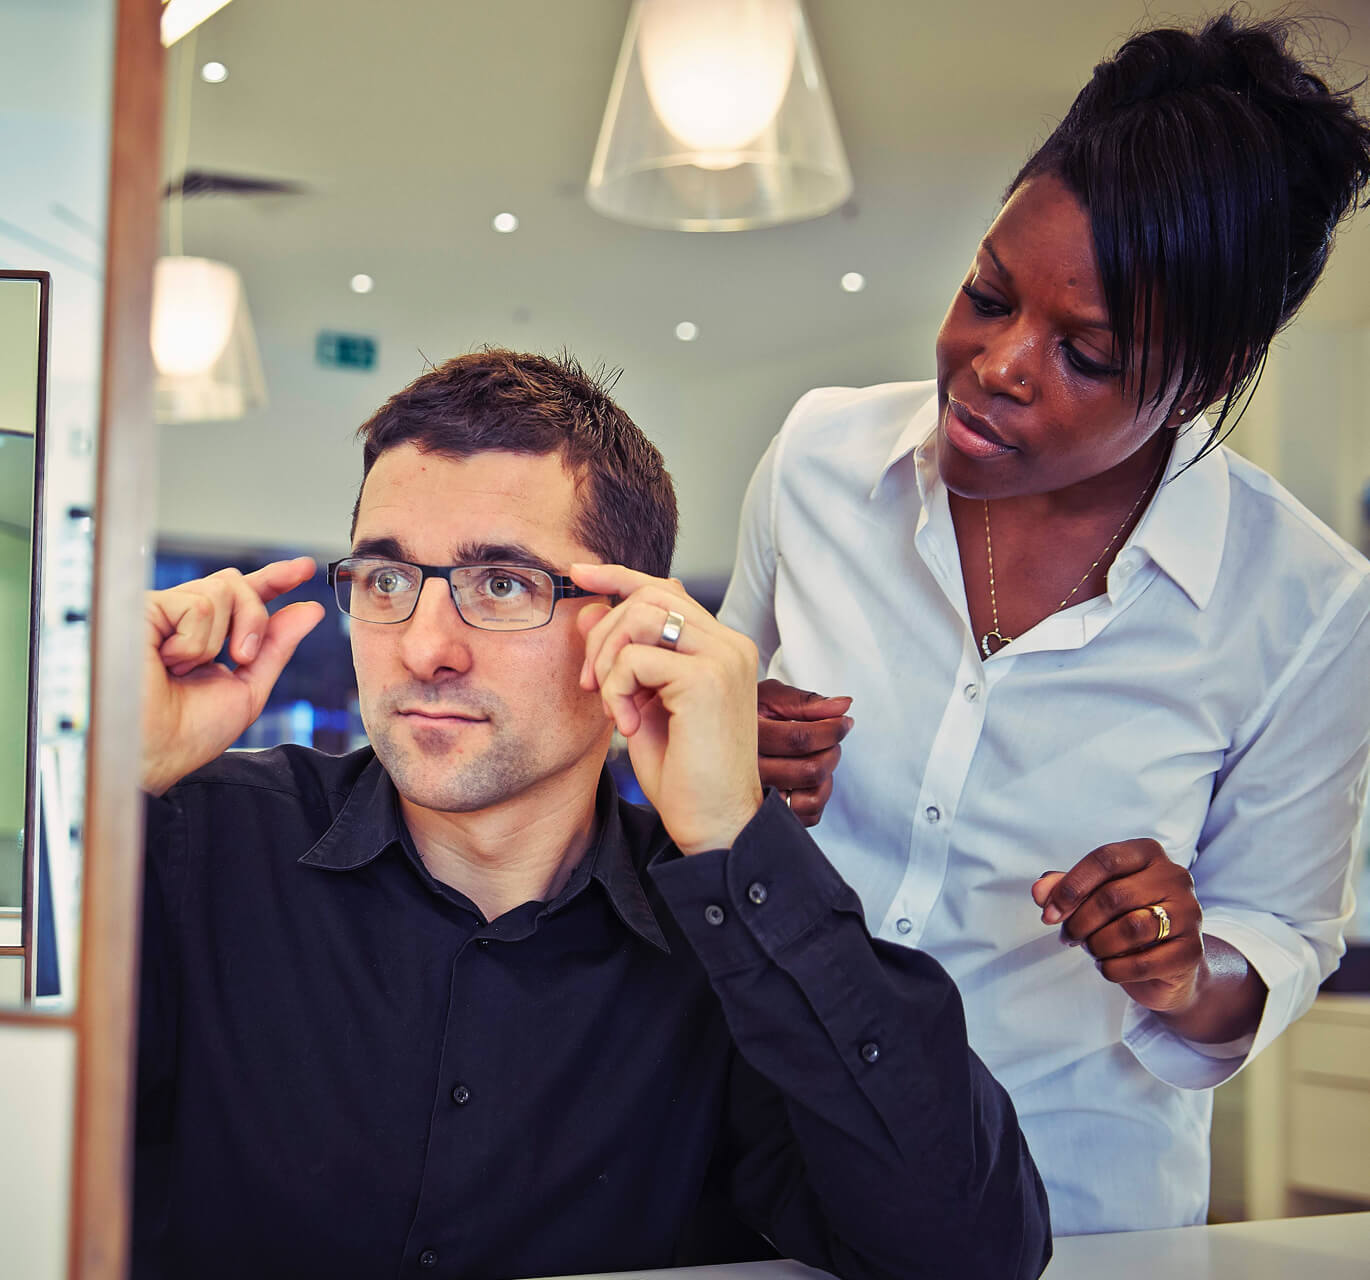 A man with dark hair and a dark blue shirt sits trying on a pair of prescription glasses while a woman in a white blouse stands behind him.